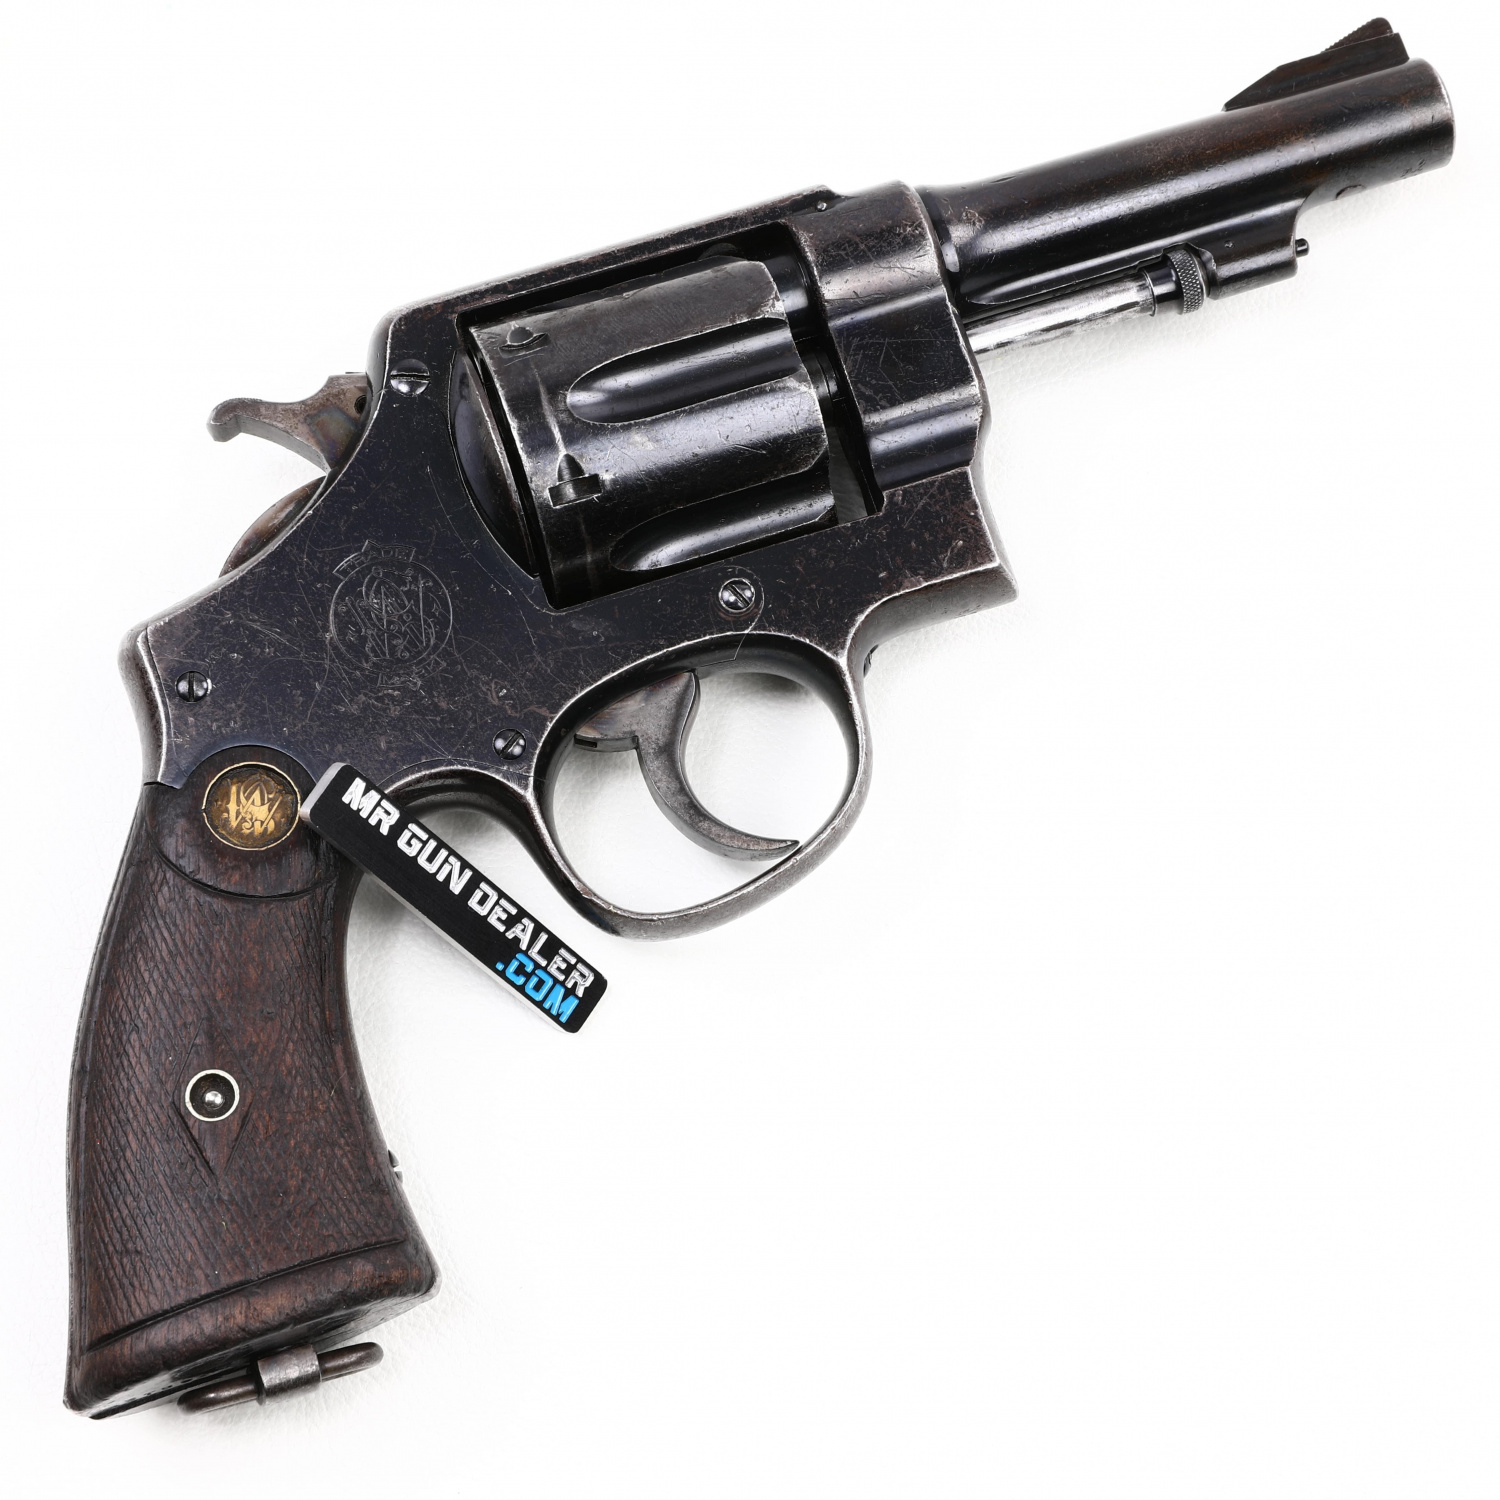 Indiana Jones' S&W Bapty Revolver from Raiders of the Lost Ark for Sale